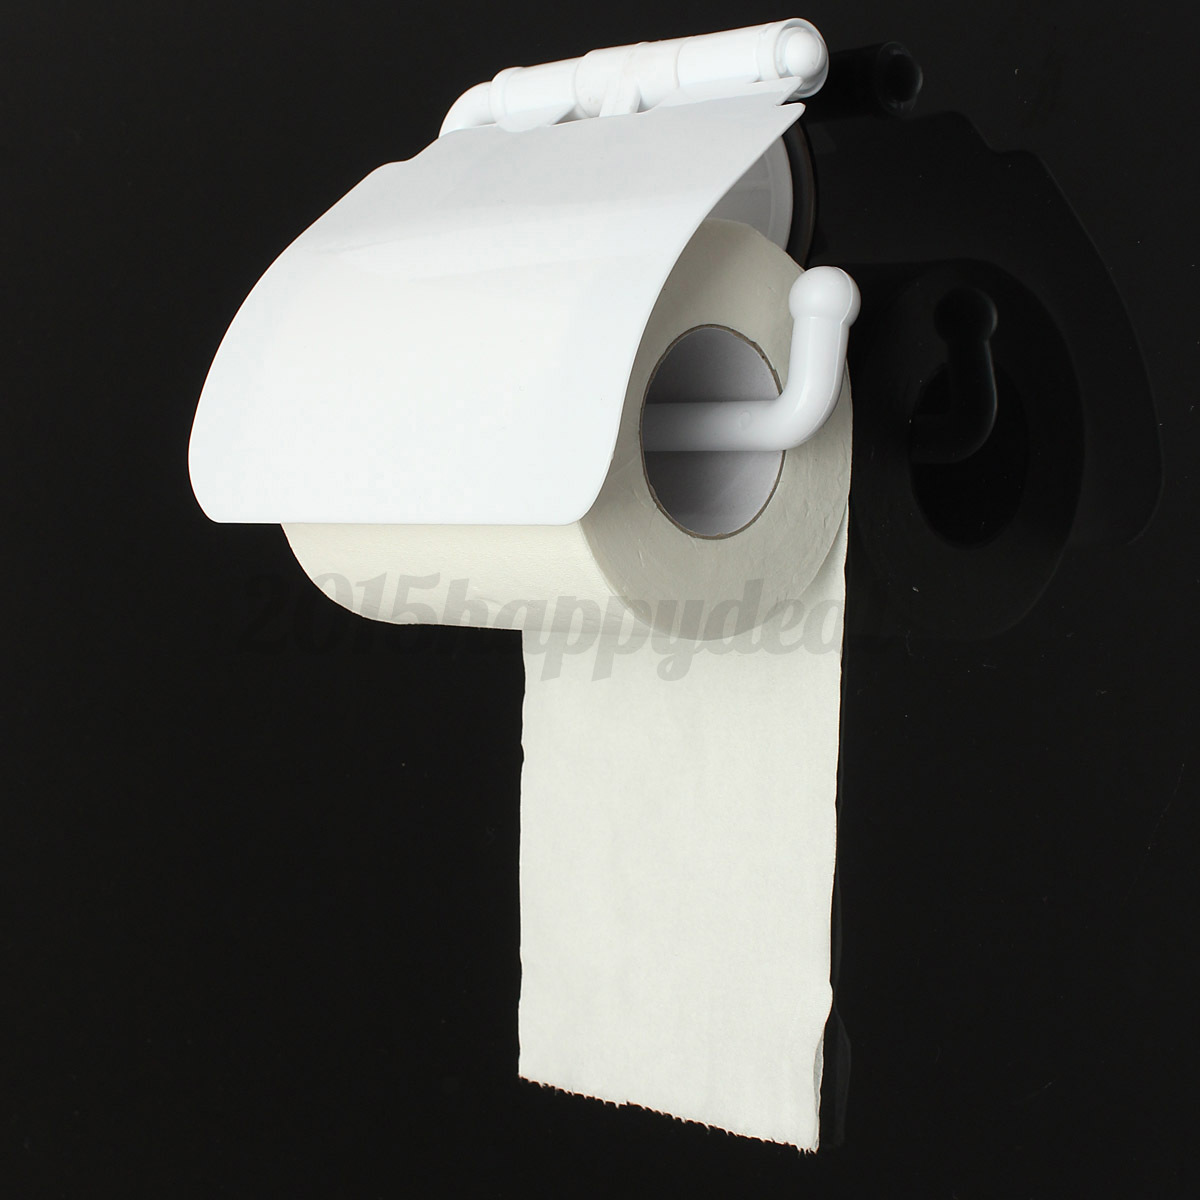 Plastic Toilet Roll Holder Plastic Toilet Paper Roll Tissue Box Sucker Rack Holder